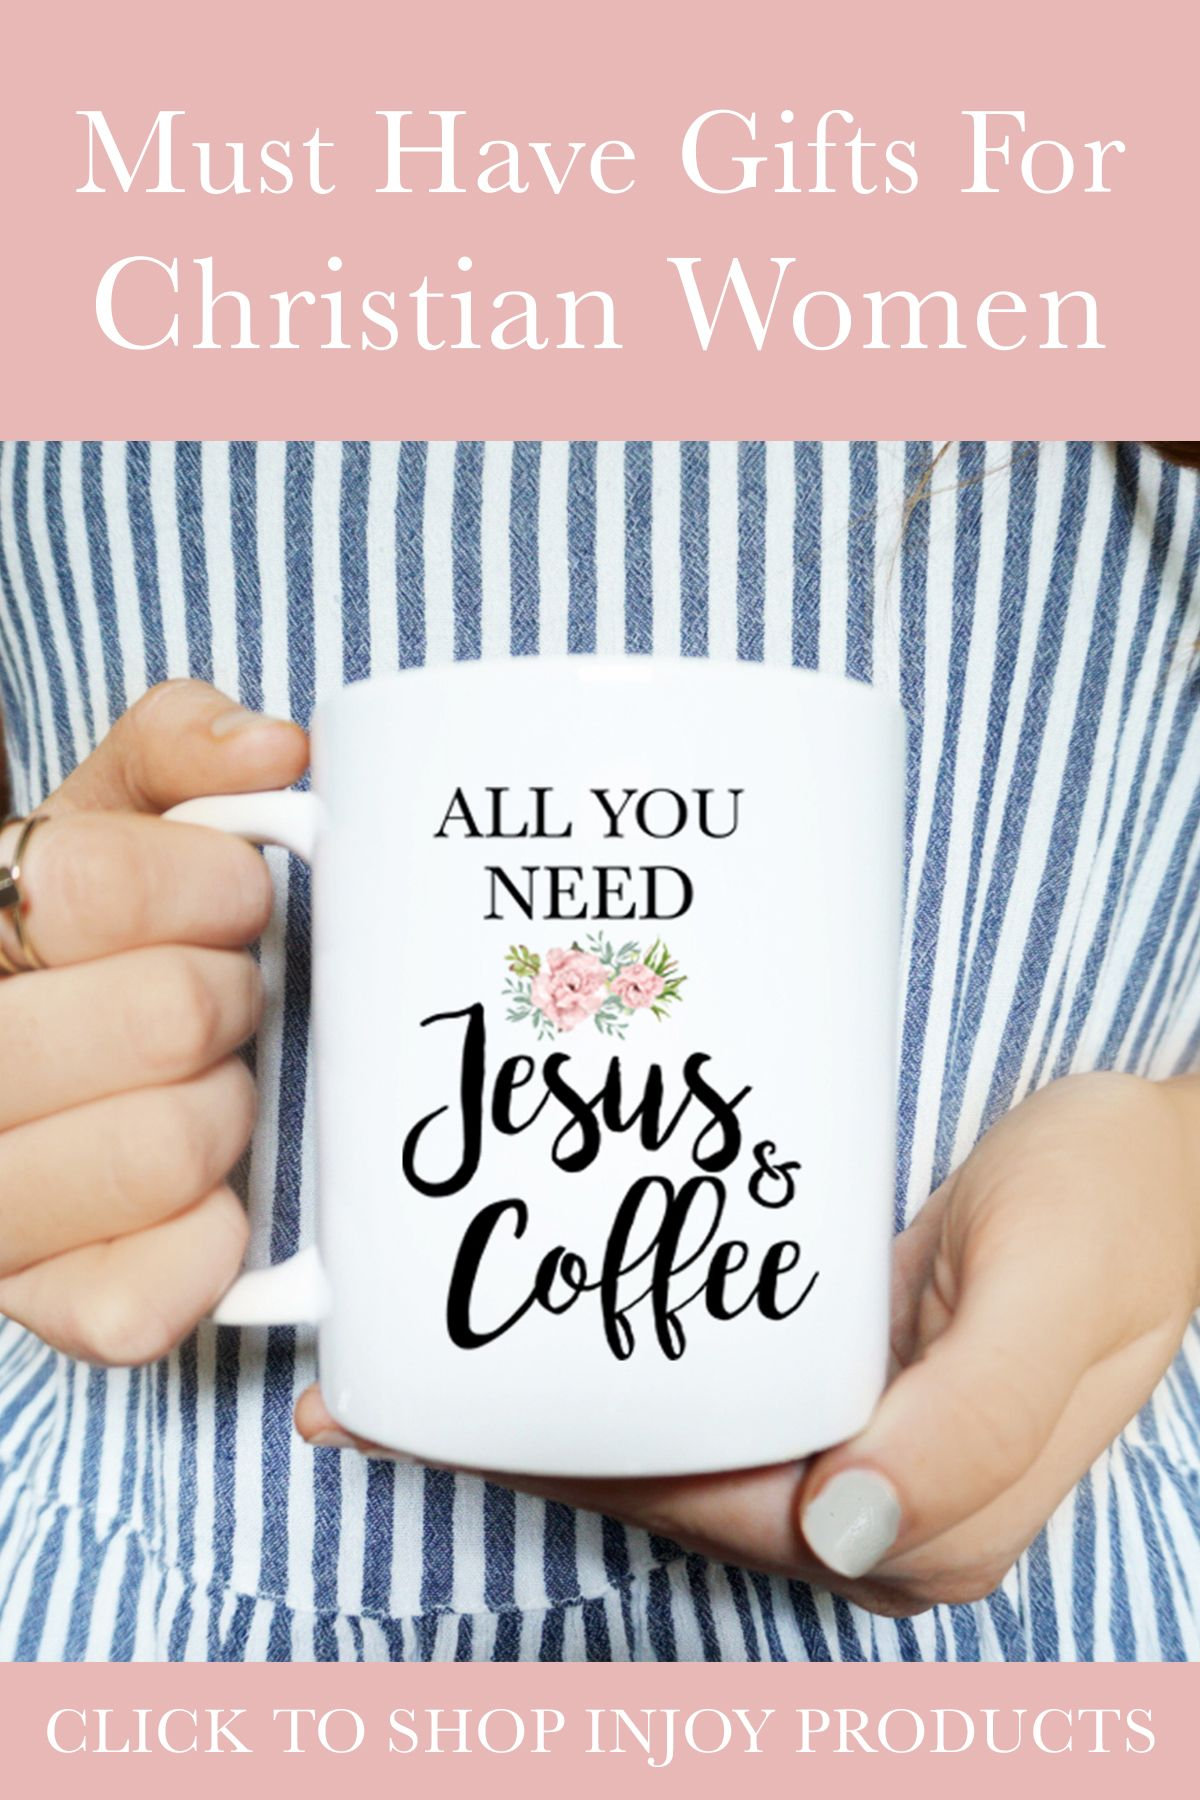 All You Need Is Jesus & Coffee, Coffee Mug, Christian